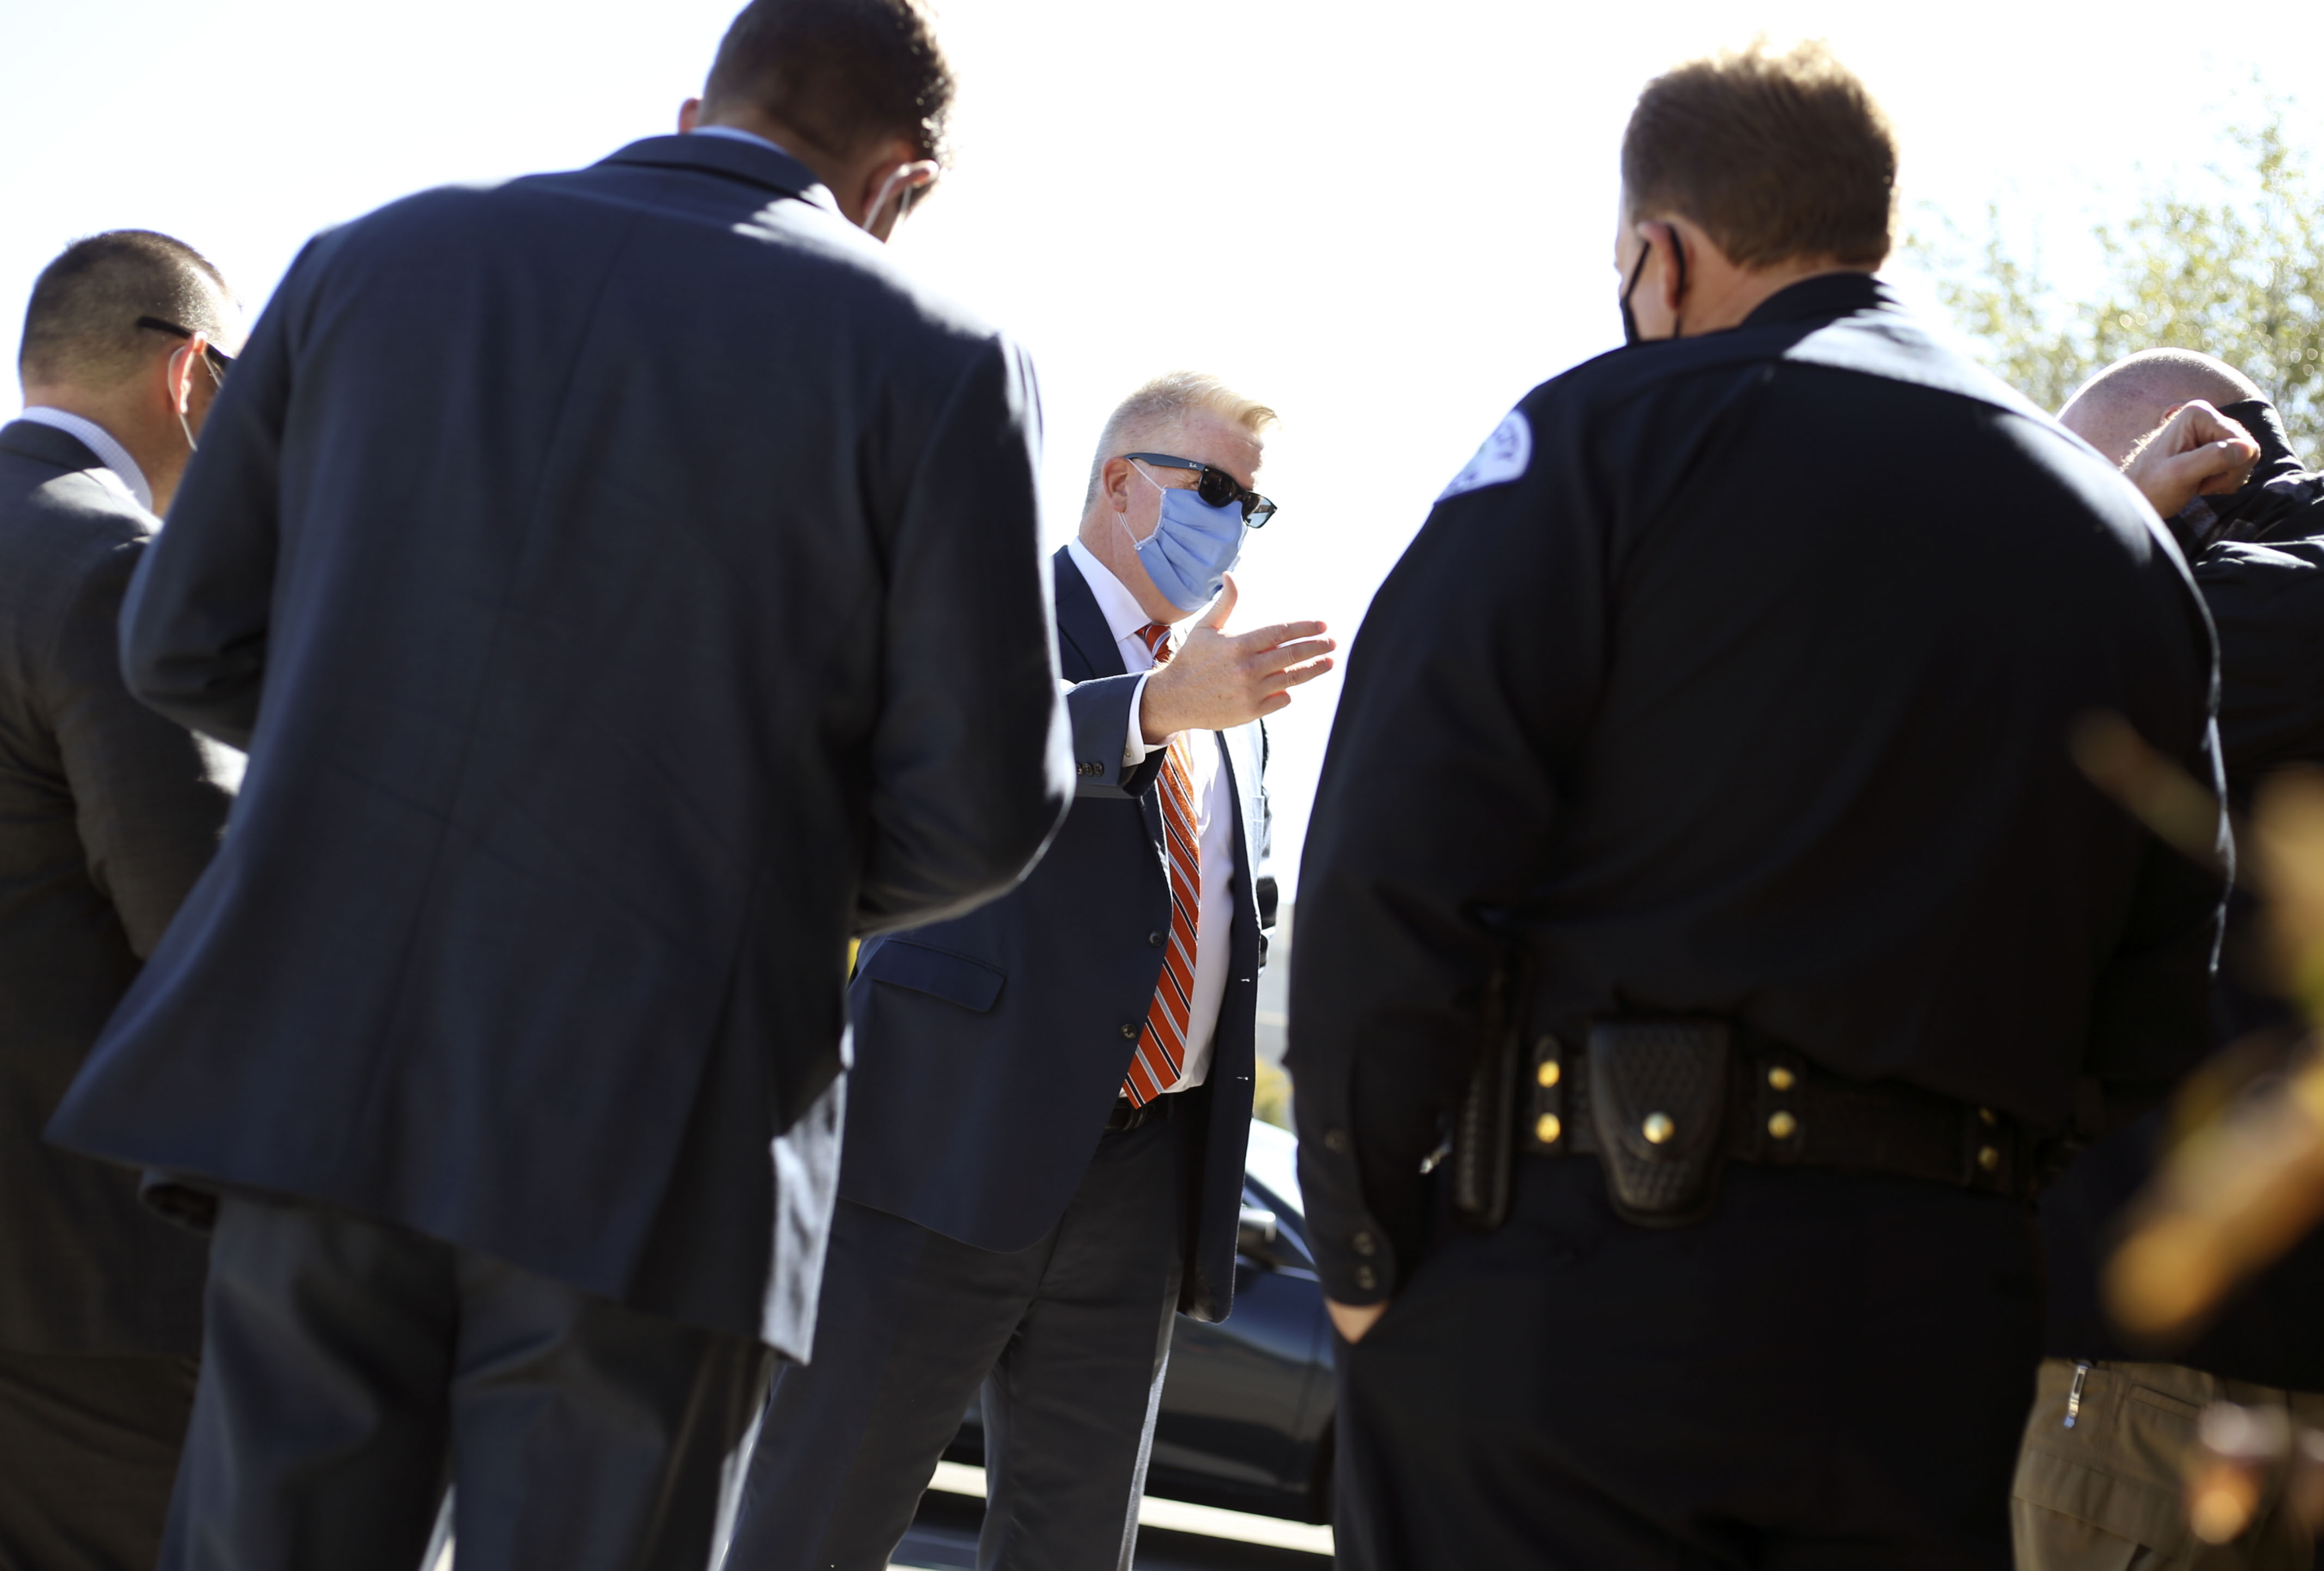 U.S. Attorney John Huber speaks to law enforcement officers before a press conference announcing the arrest of 20 white supremacy gang members and their associates outside the Salt Lake County Sheriff's Office in Salt Lake City on Friday, Oct. 16, 2020.